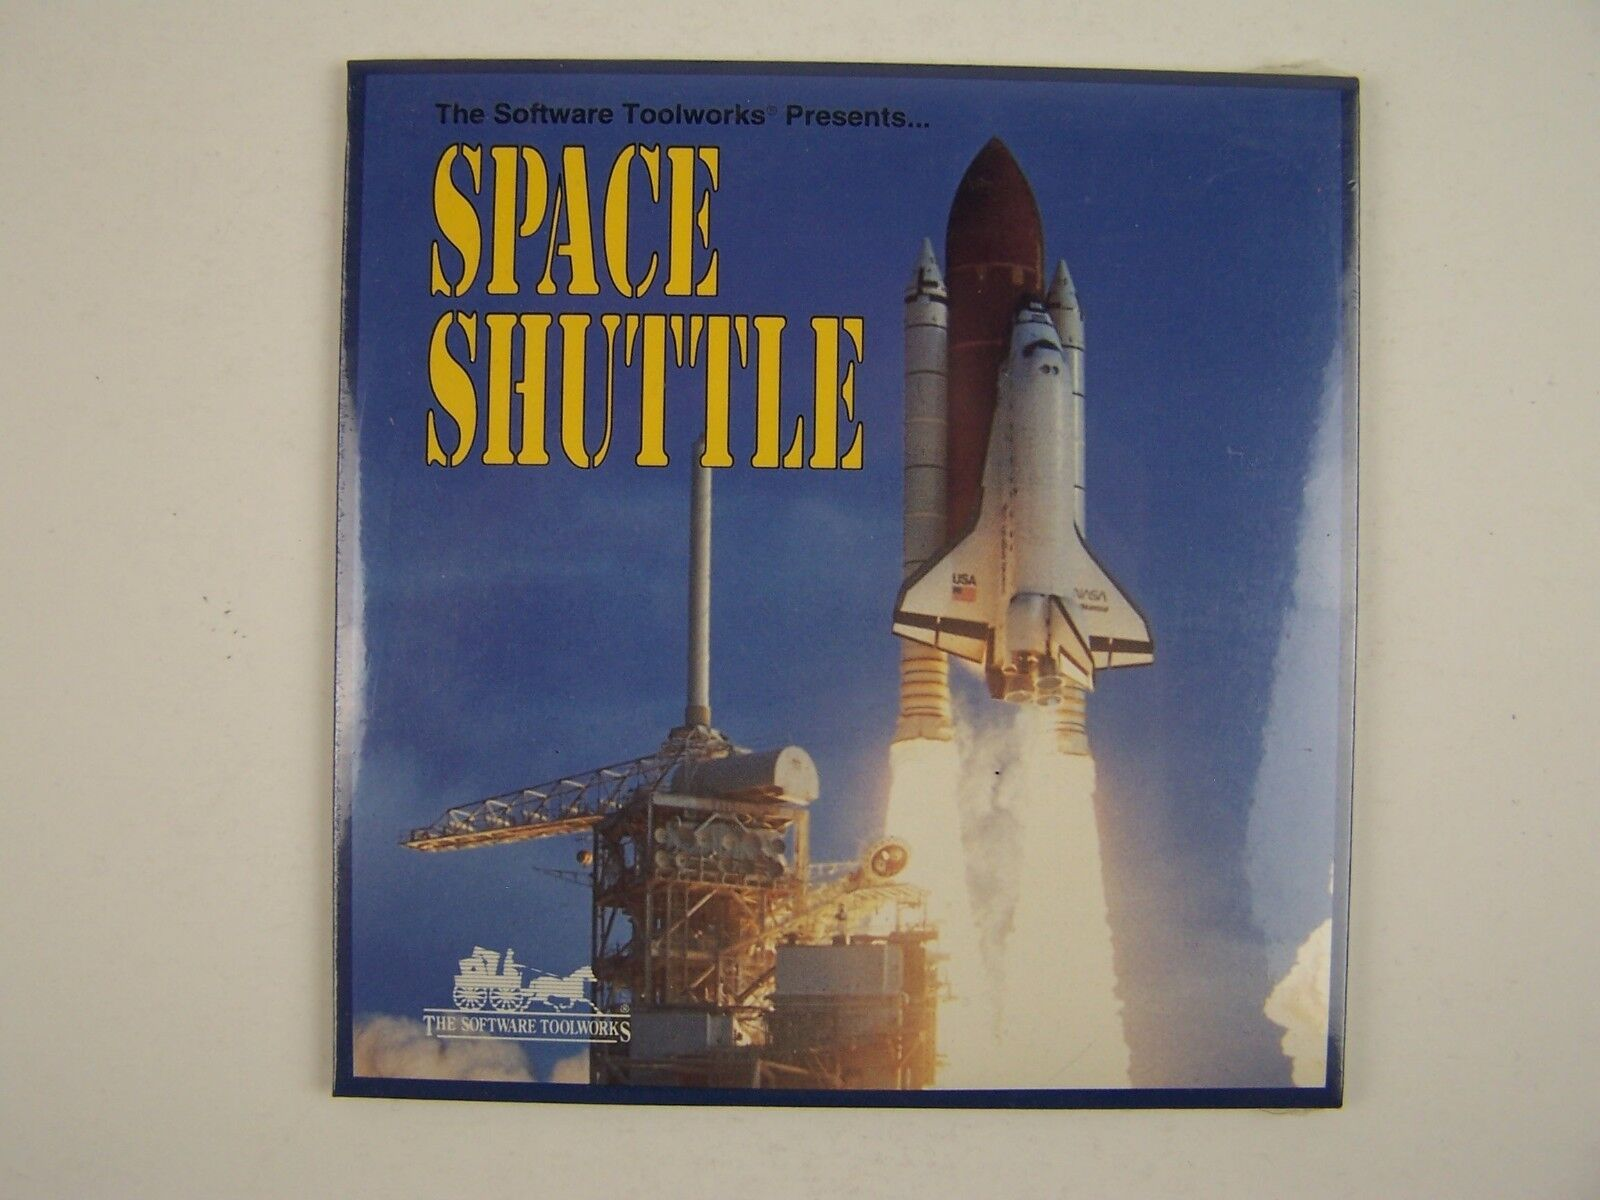 The Software Toolworks Presents Space Shuttle PC CD New